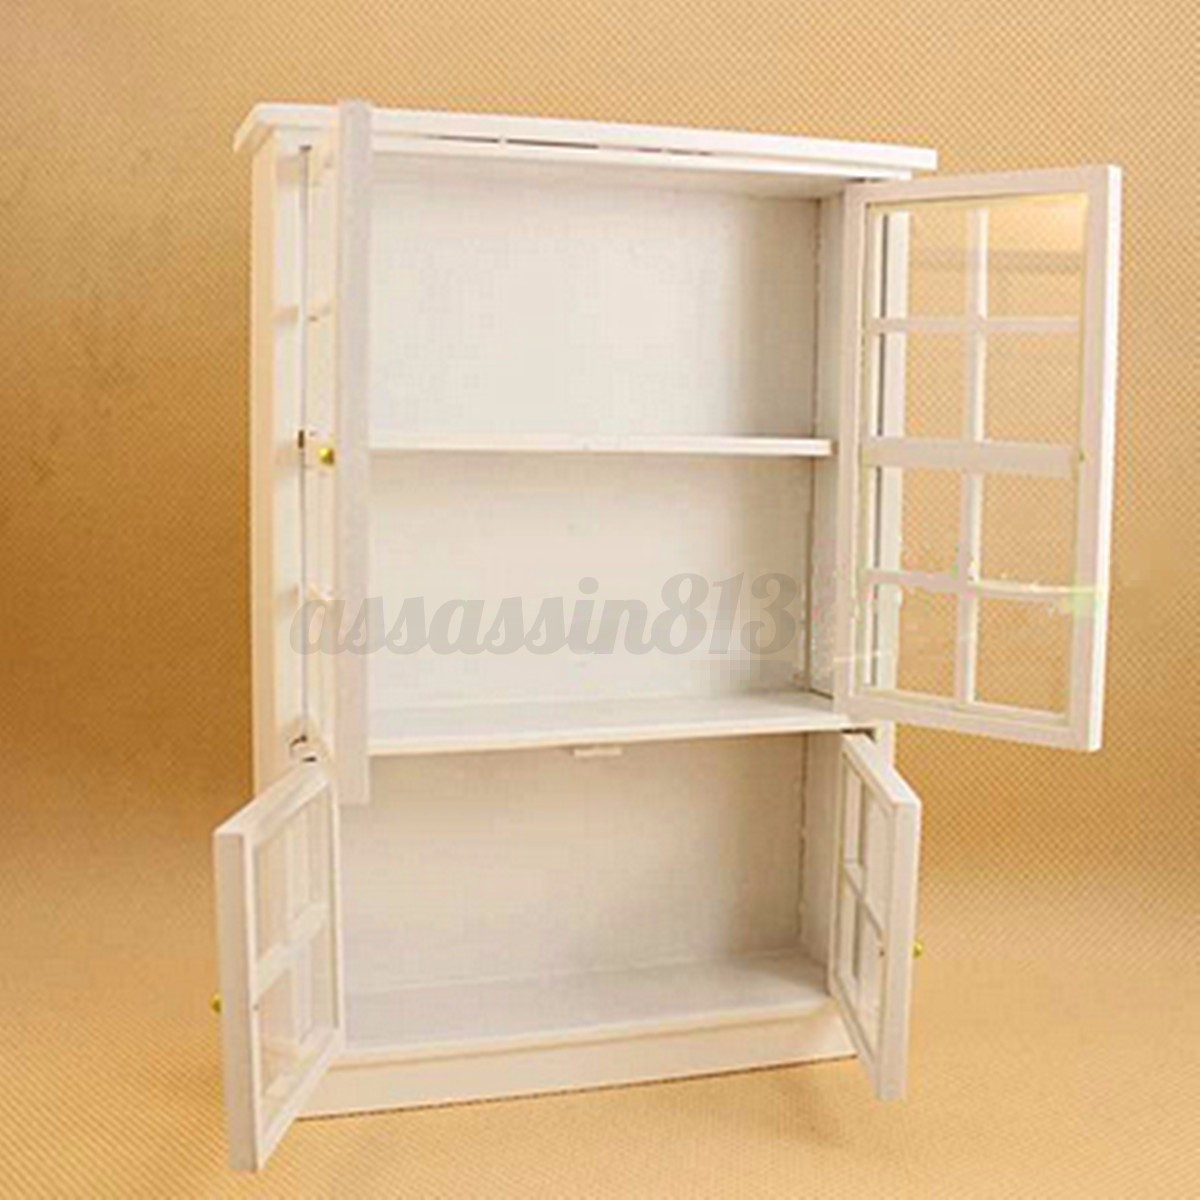 1 12 Dollhouse Miniature Furniture Dining Room Kitchen Cabinet Display Shelf